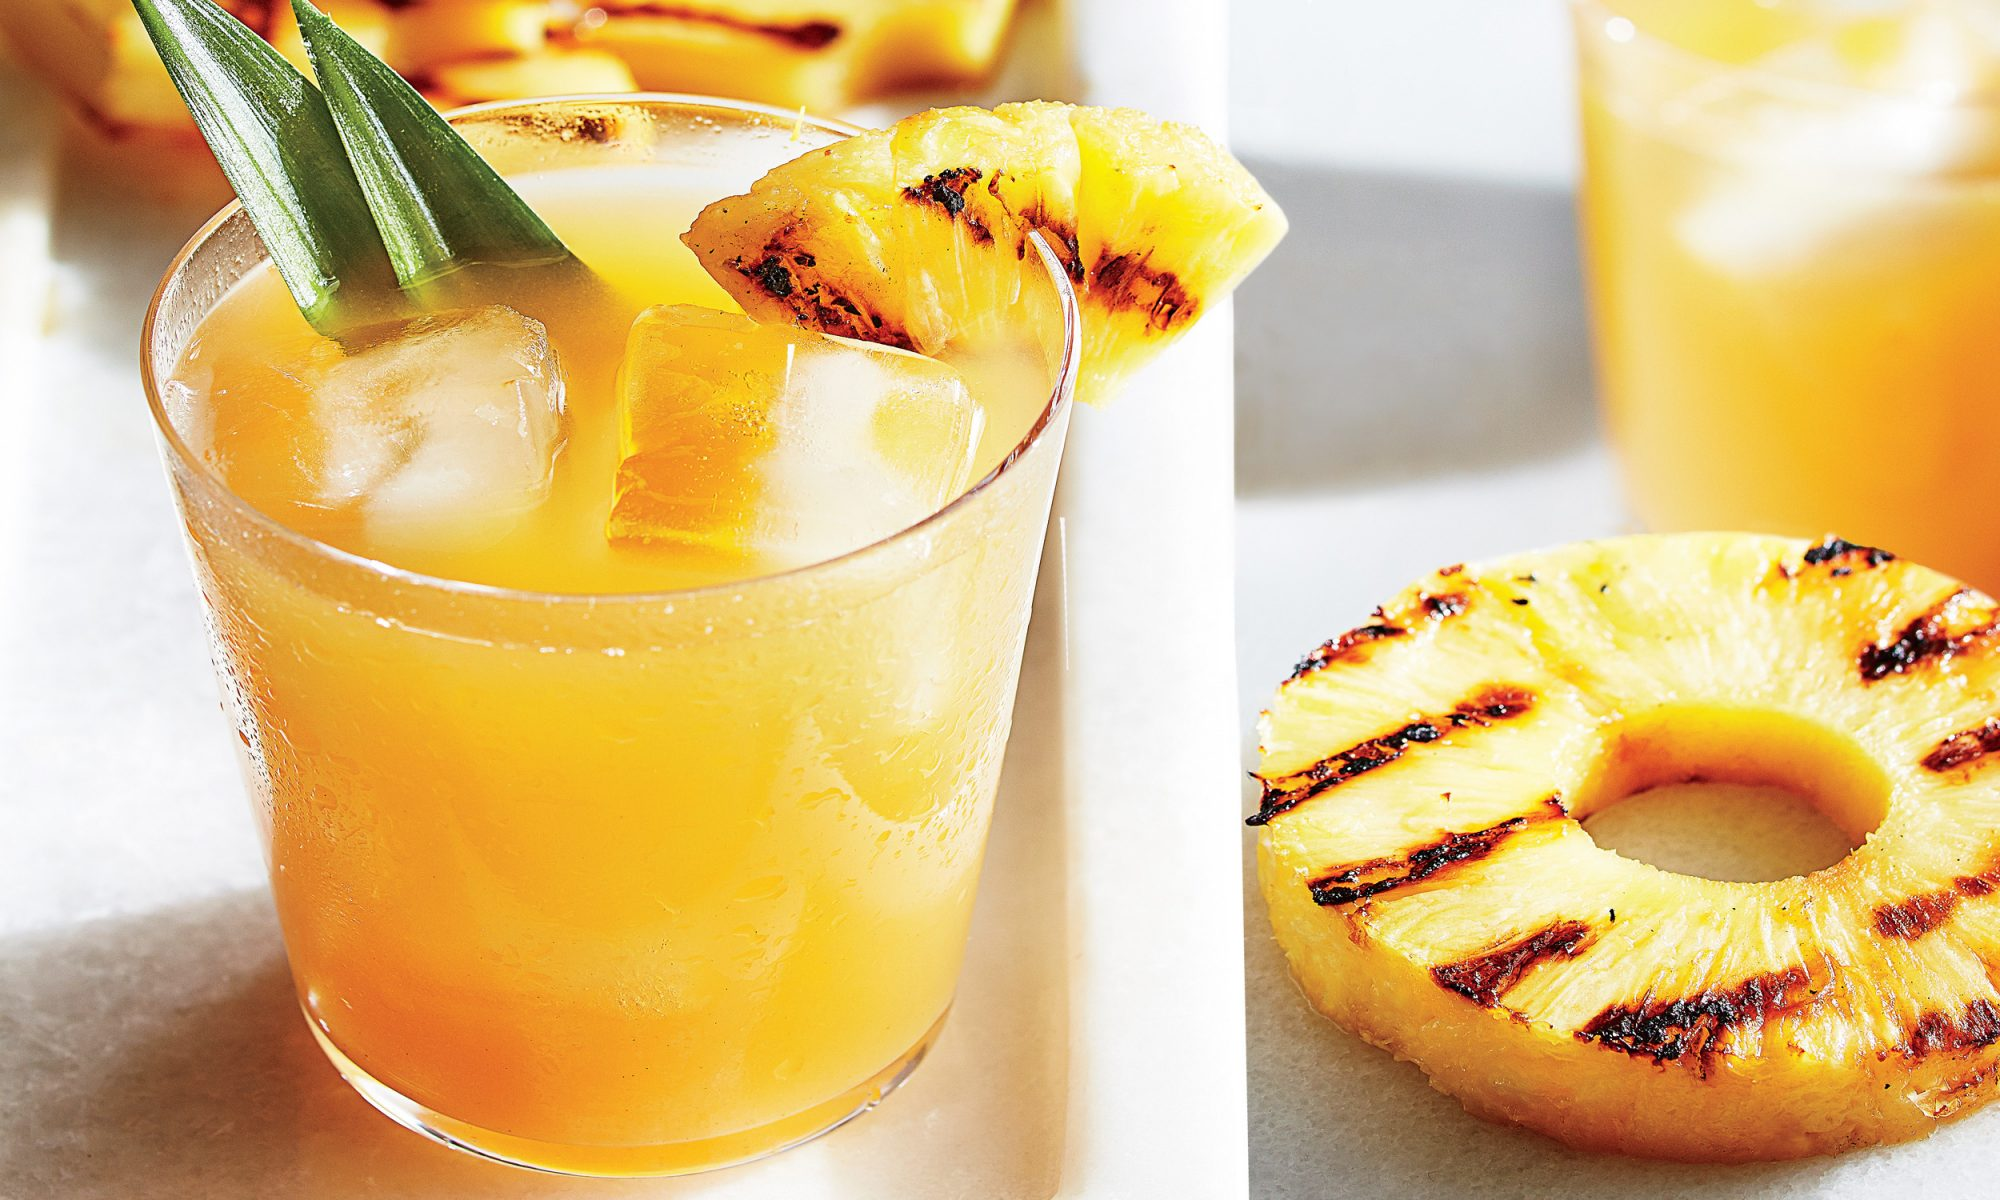 EC: I'm Sure Your Homemade Lemonade Is Great, but It Could Use Grilled Pineapple